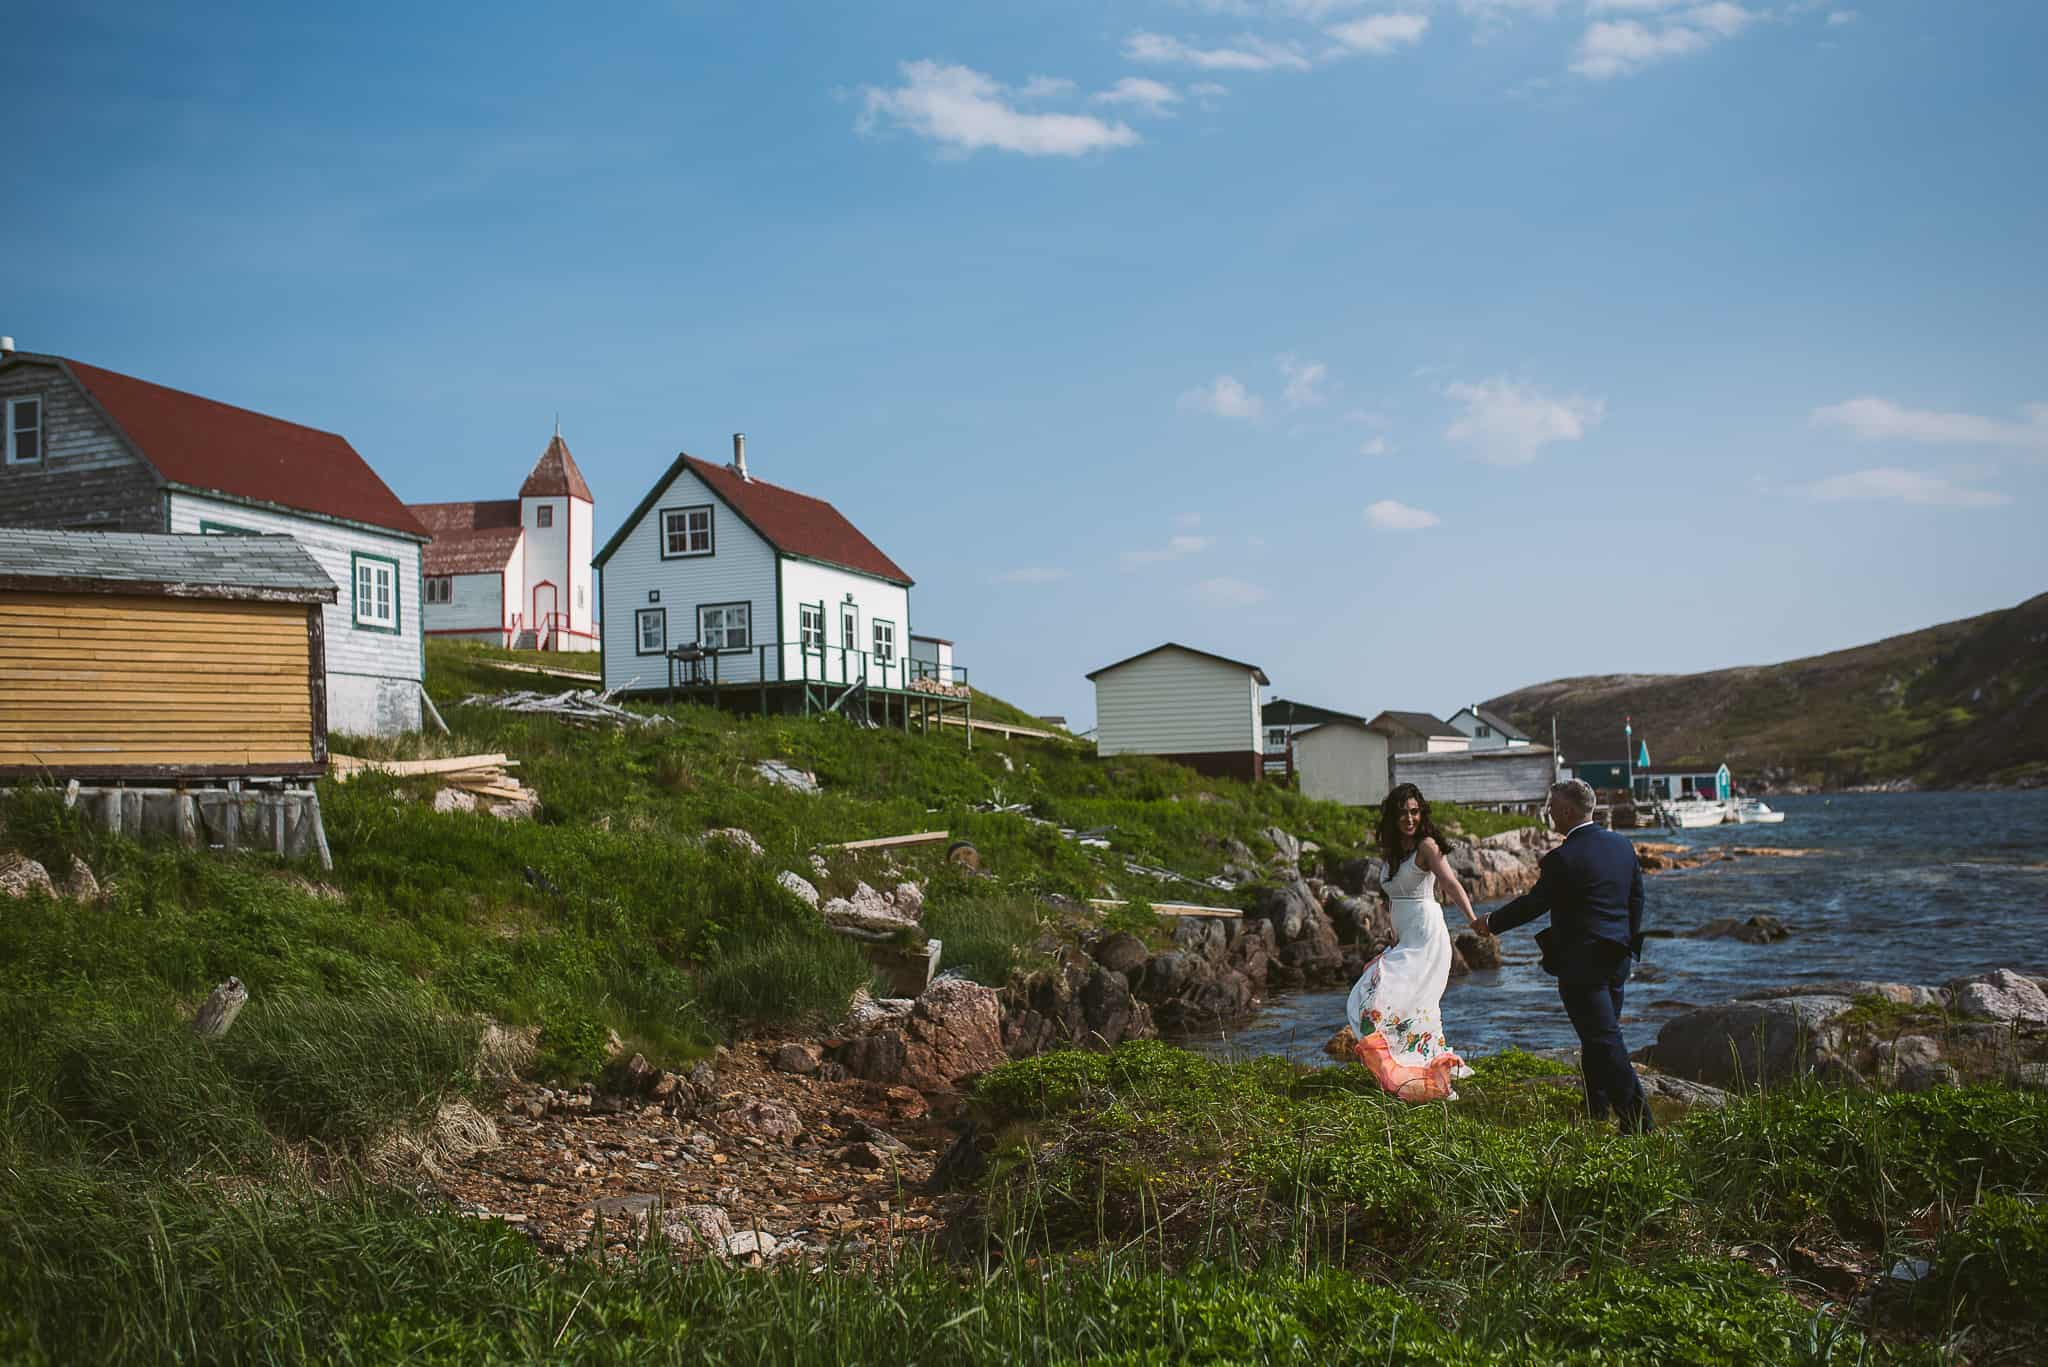 the couple laughs as they walk across the 'beach' near the tiny houses of battle harbour